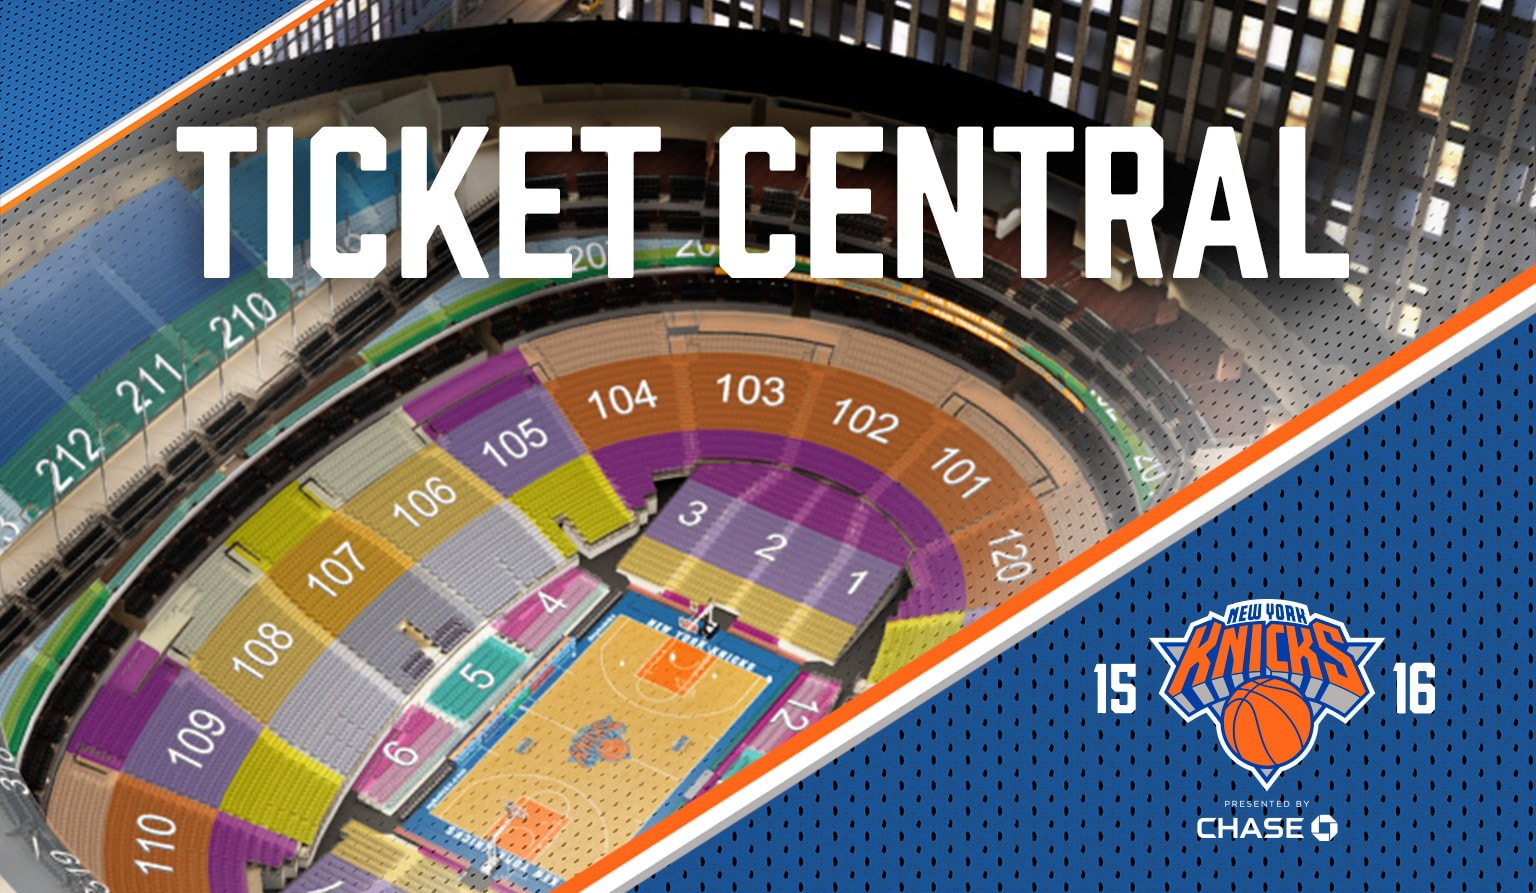 Ticket Central